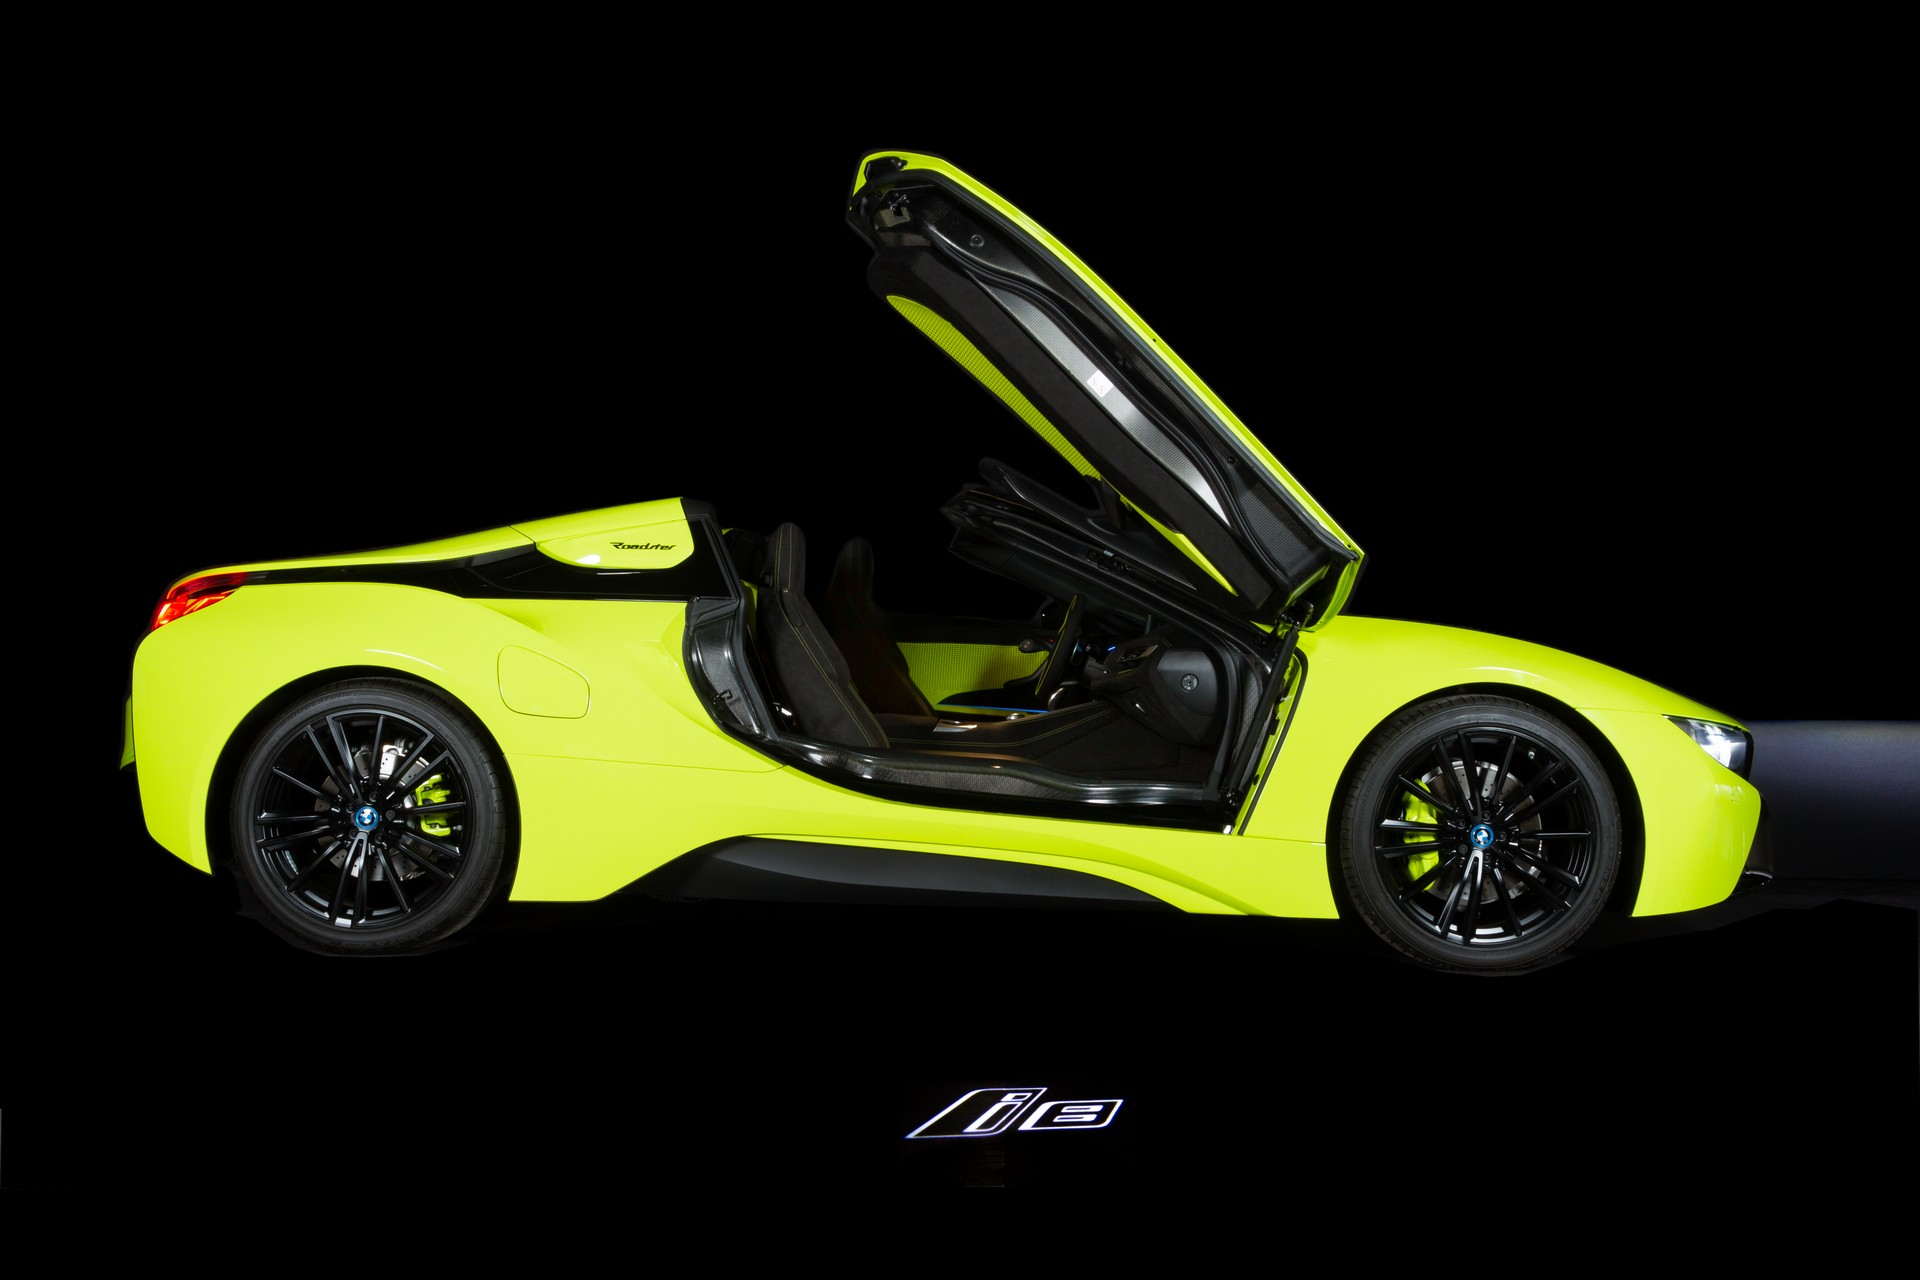 BMW-i8-Roadster-LimeLight-Edition-3